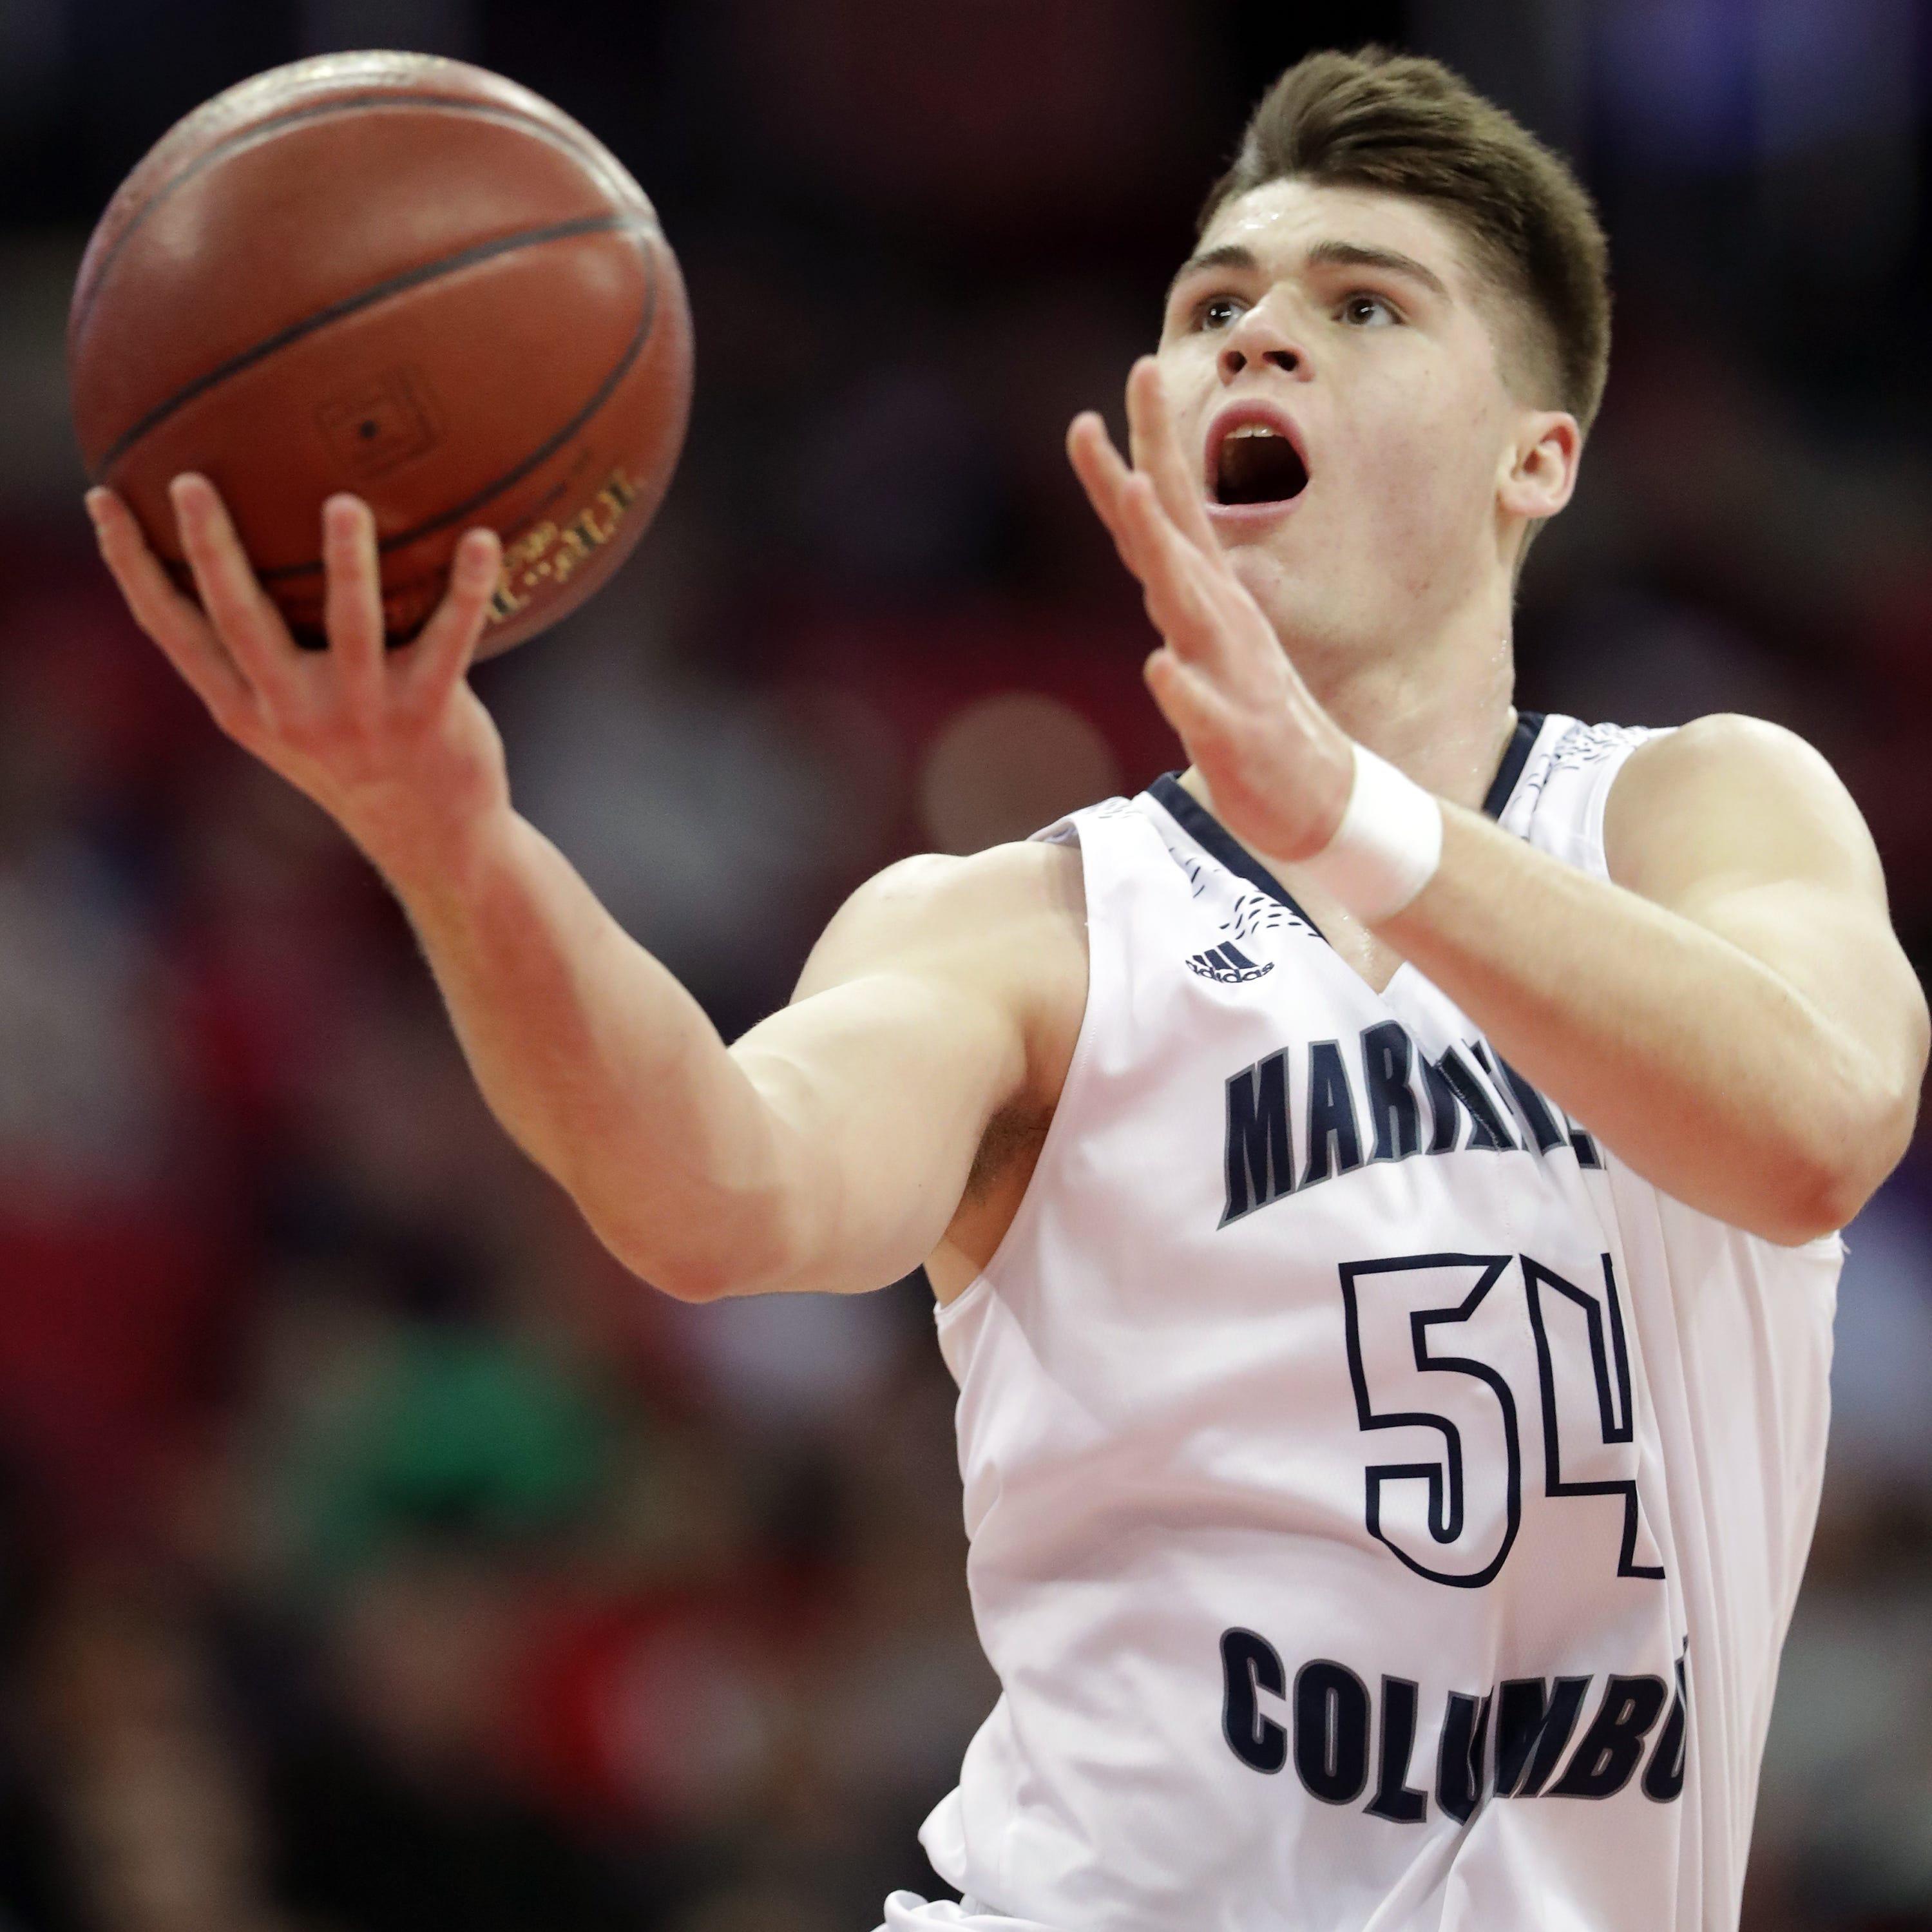 WIAA state basketball: Tom Nystrom's buzzer-beater lifts Columbus Catholic over Bangor